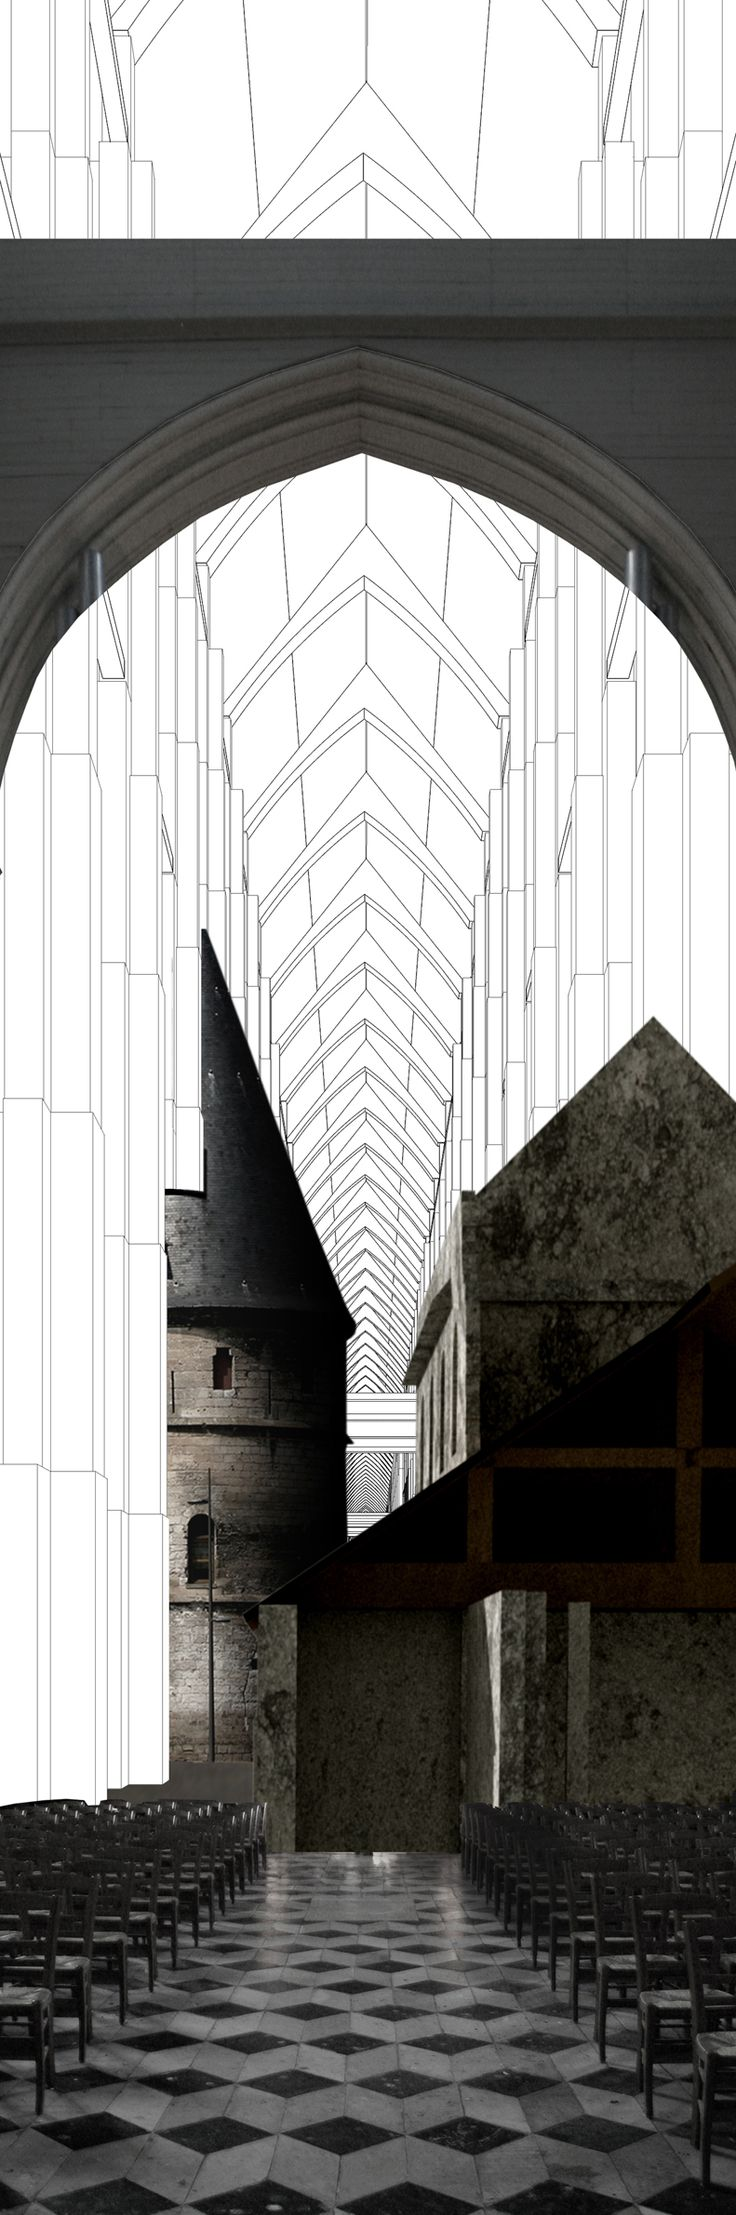 PERSP, DRAW, AA School of Architecture Projects Review 2011 - Diploma 3 - Charles Lai